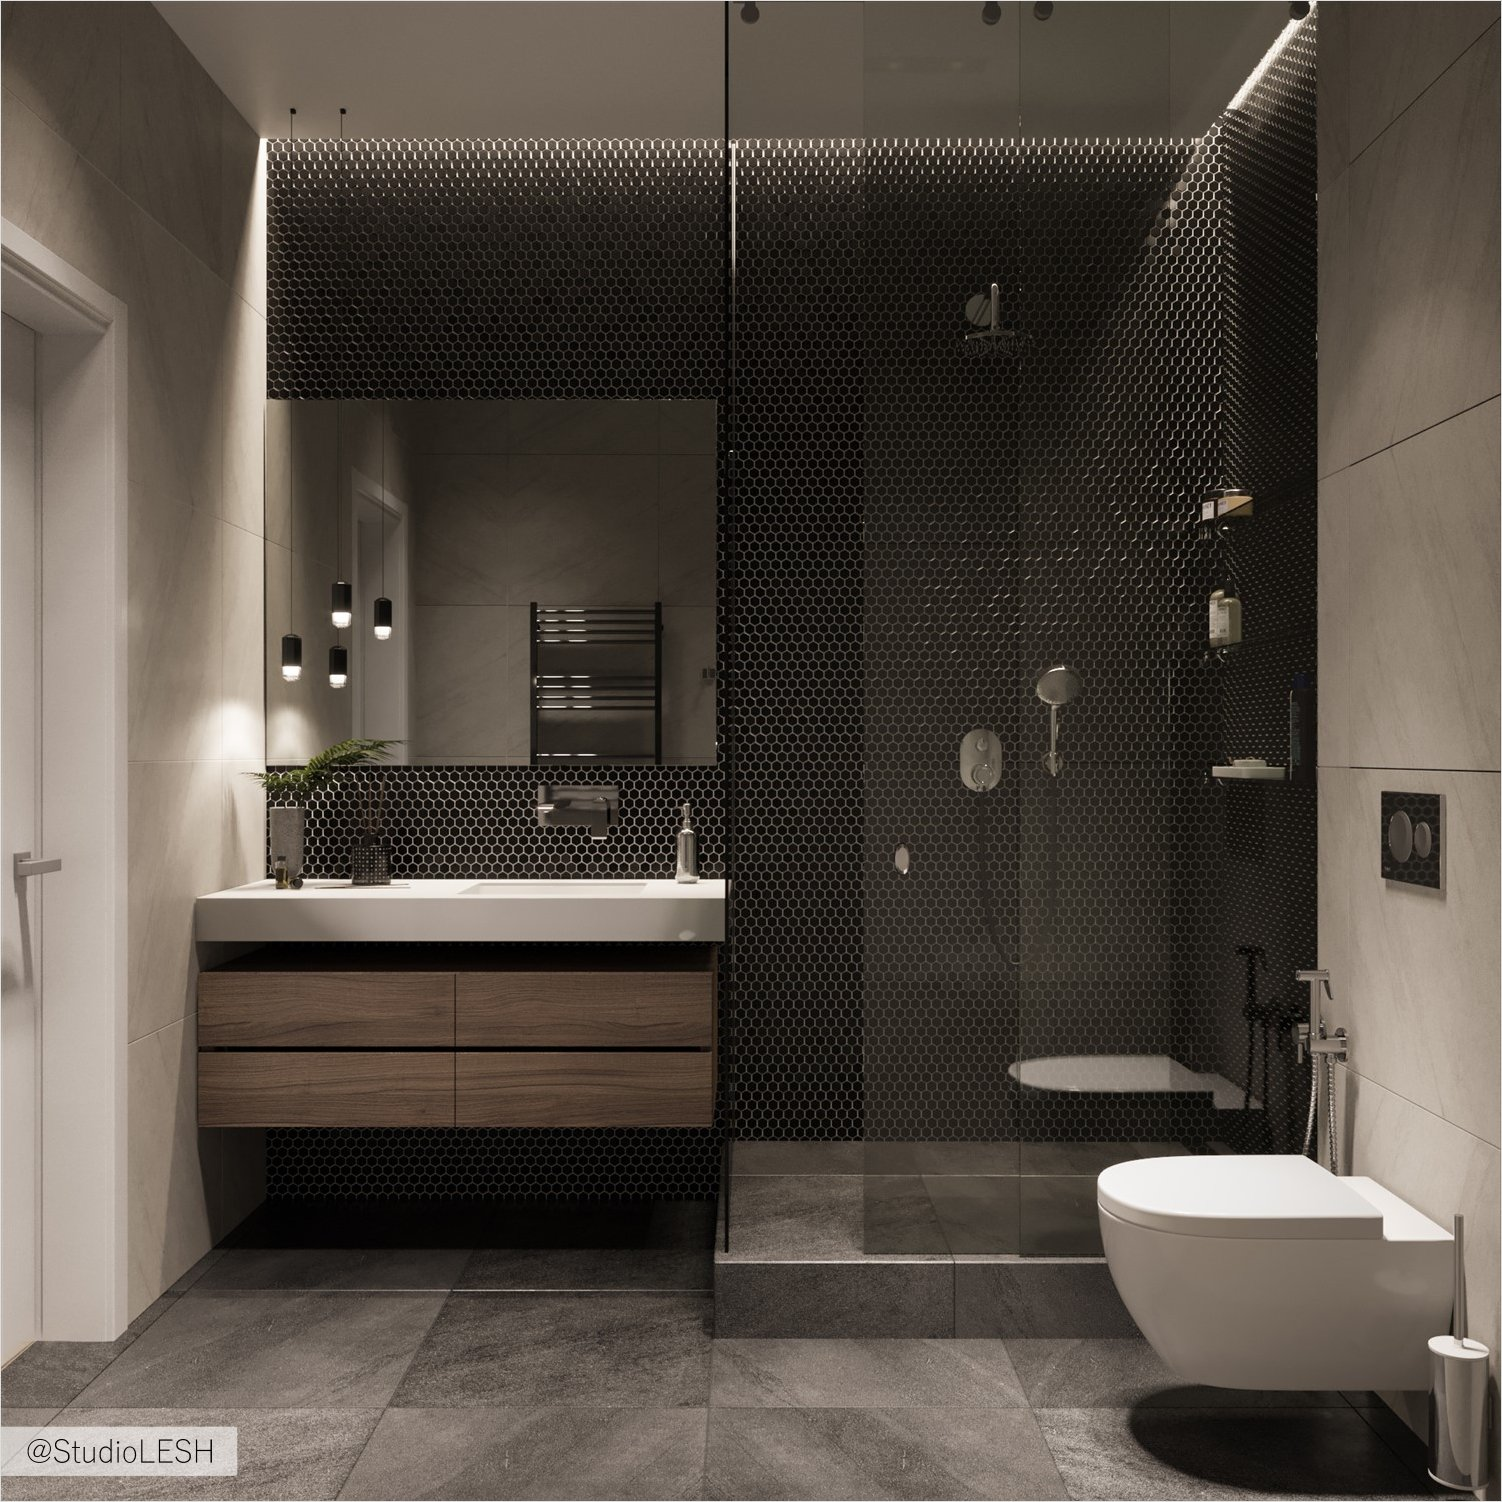 Mosaic like accent in the bathroom